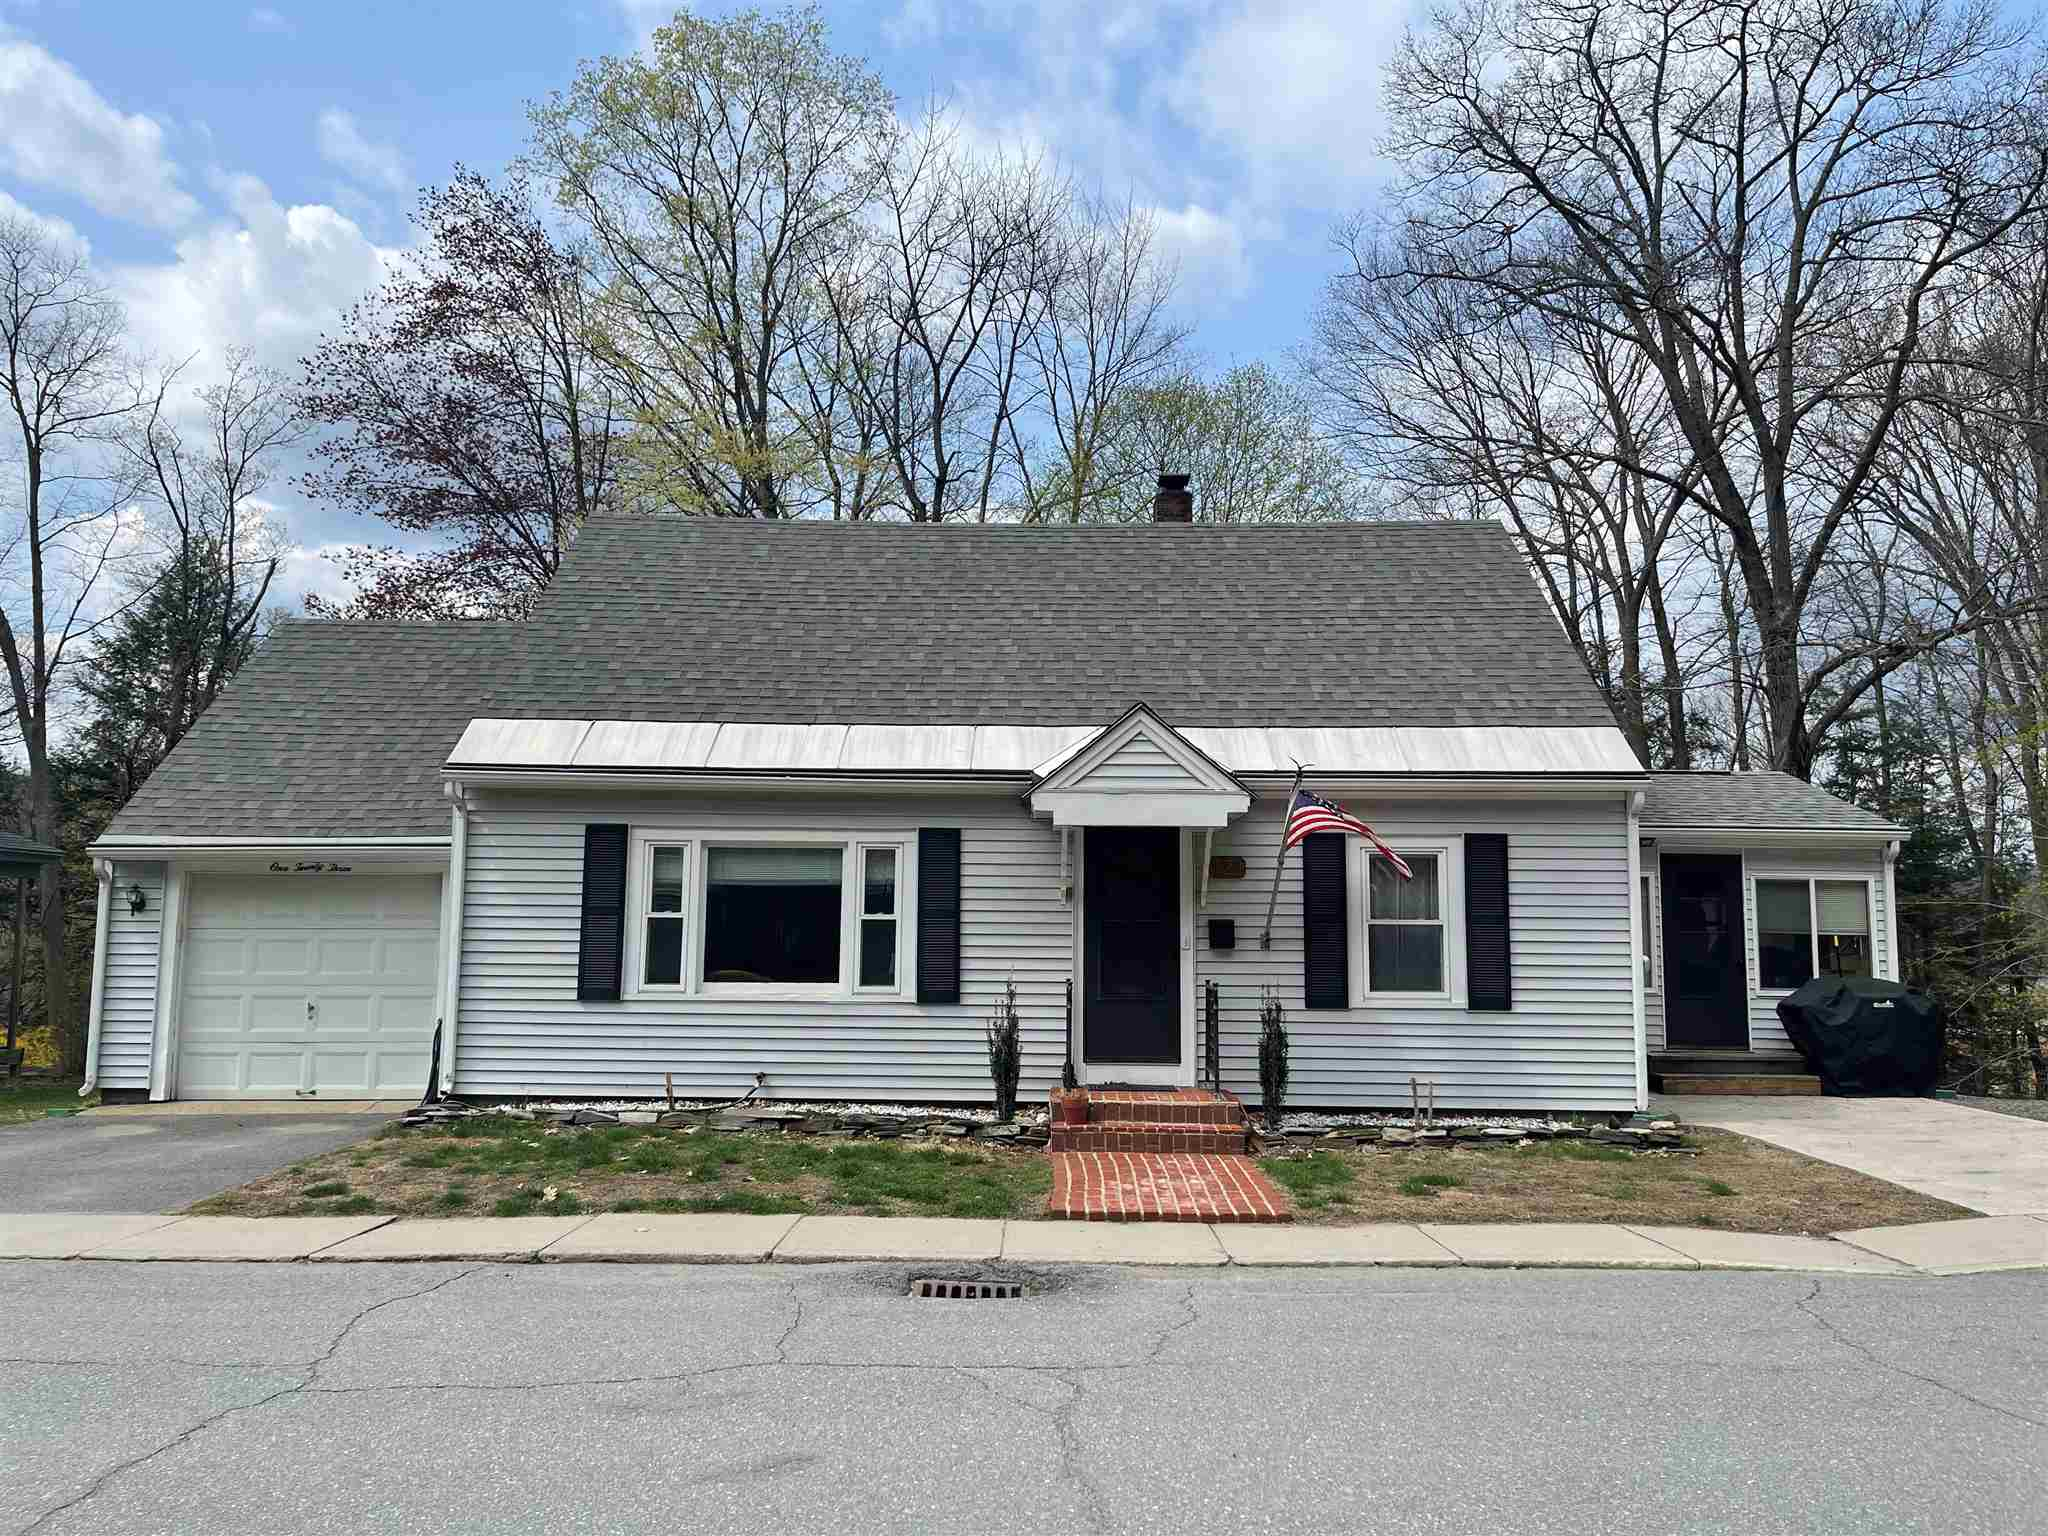 image of Springfield VT Home | sq.ft. 2067